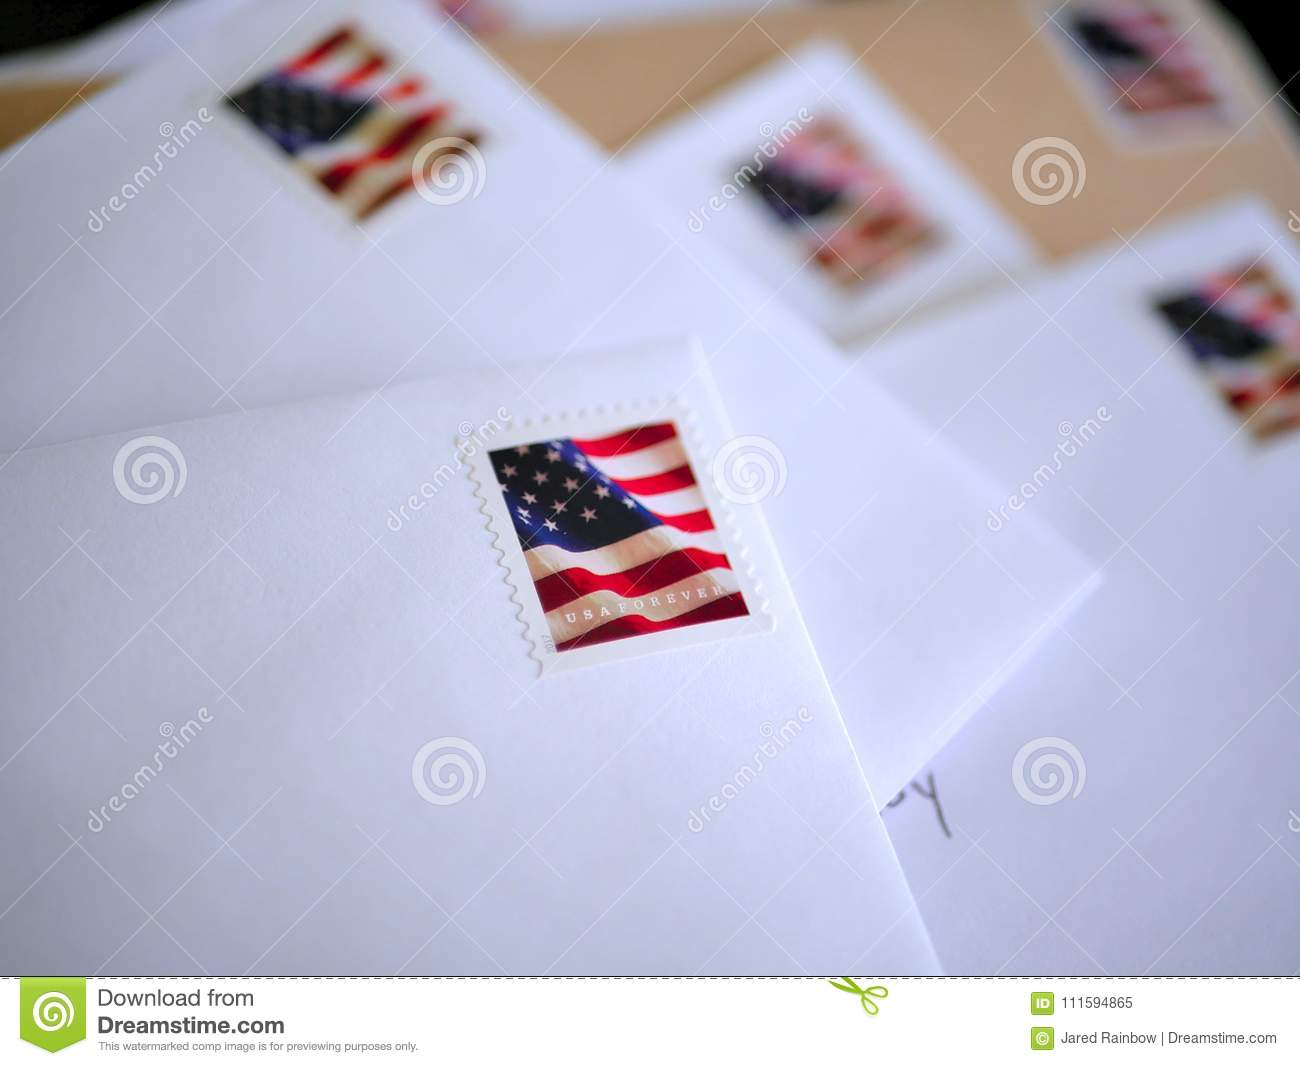 e0991bb771c7 Blank envelopes and stationery with red white and blue american flag stamps